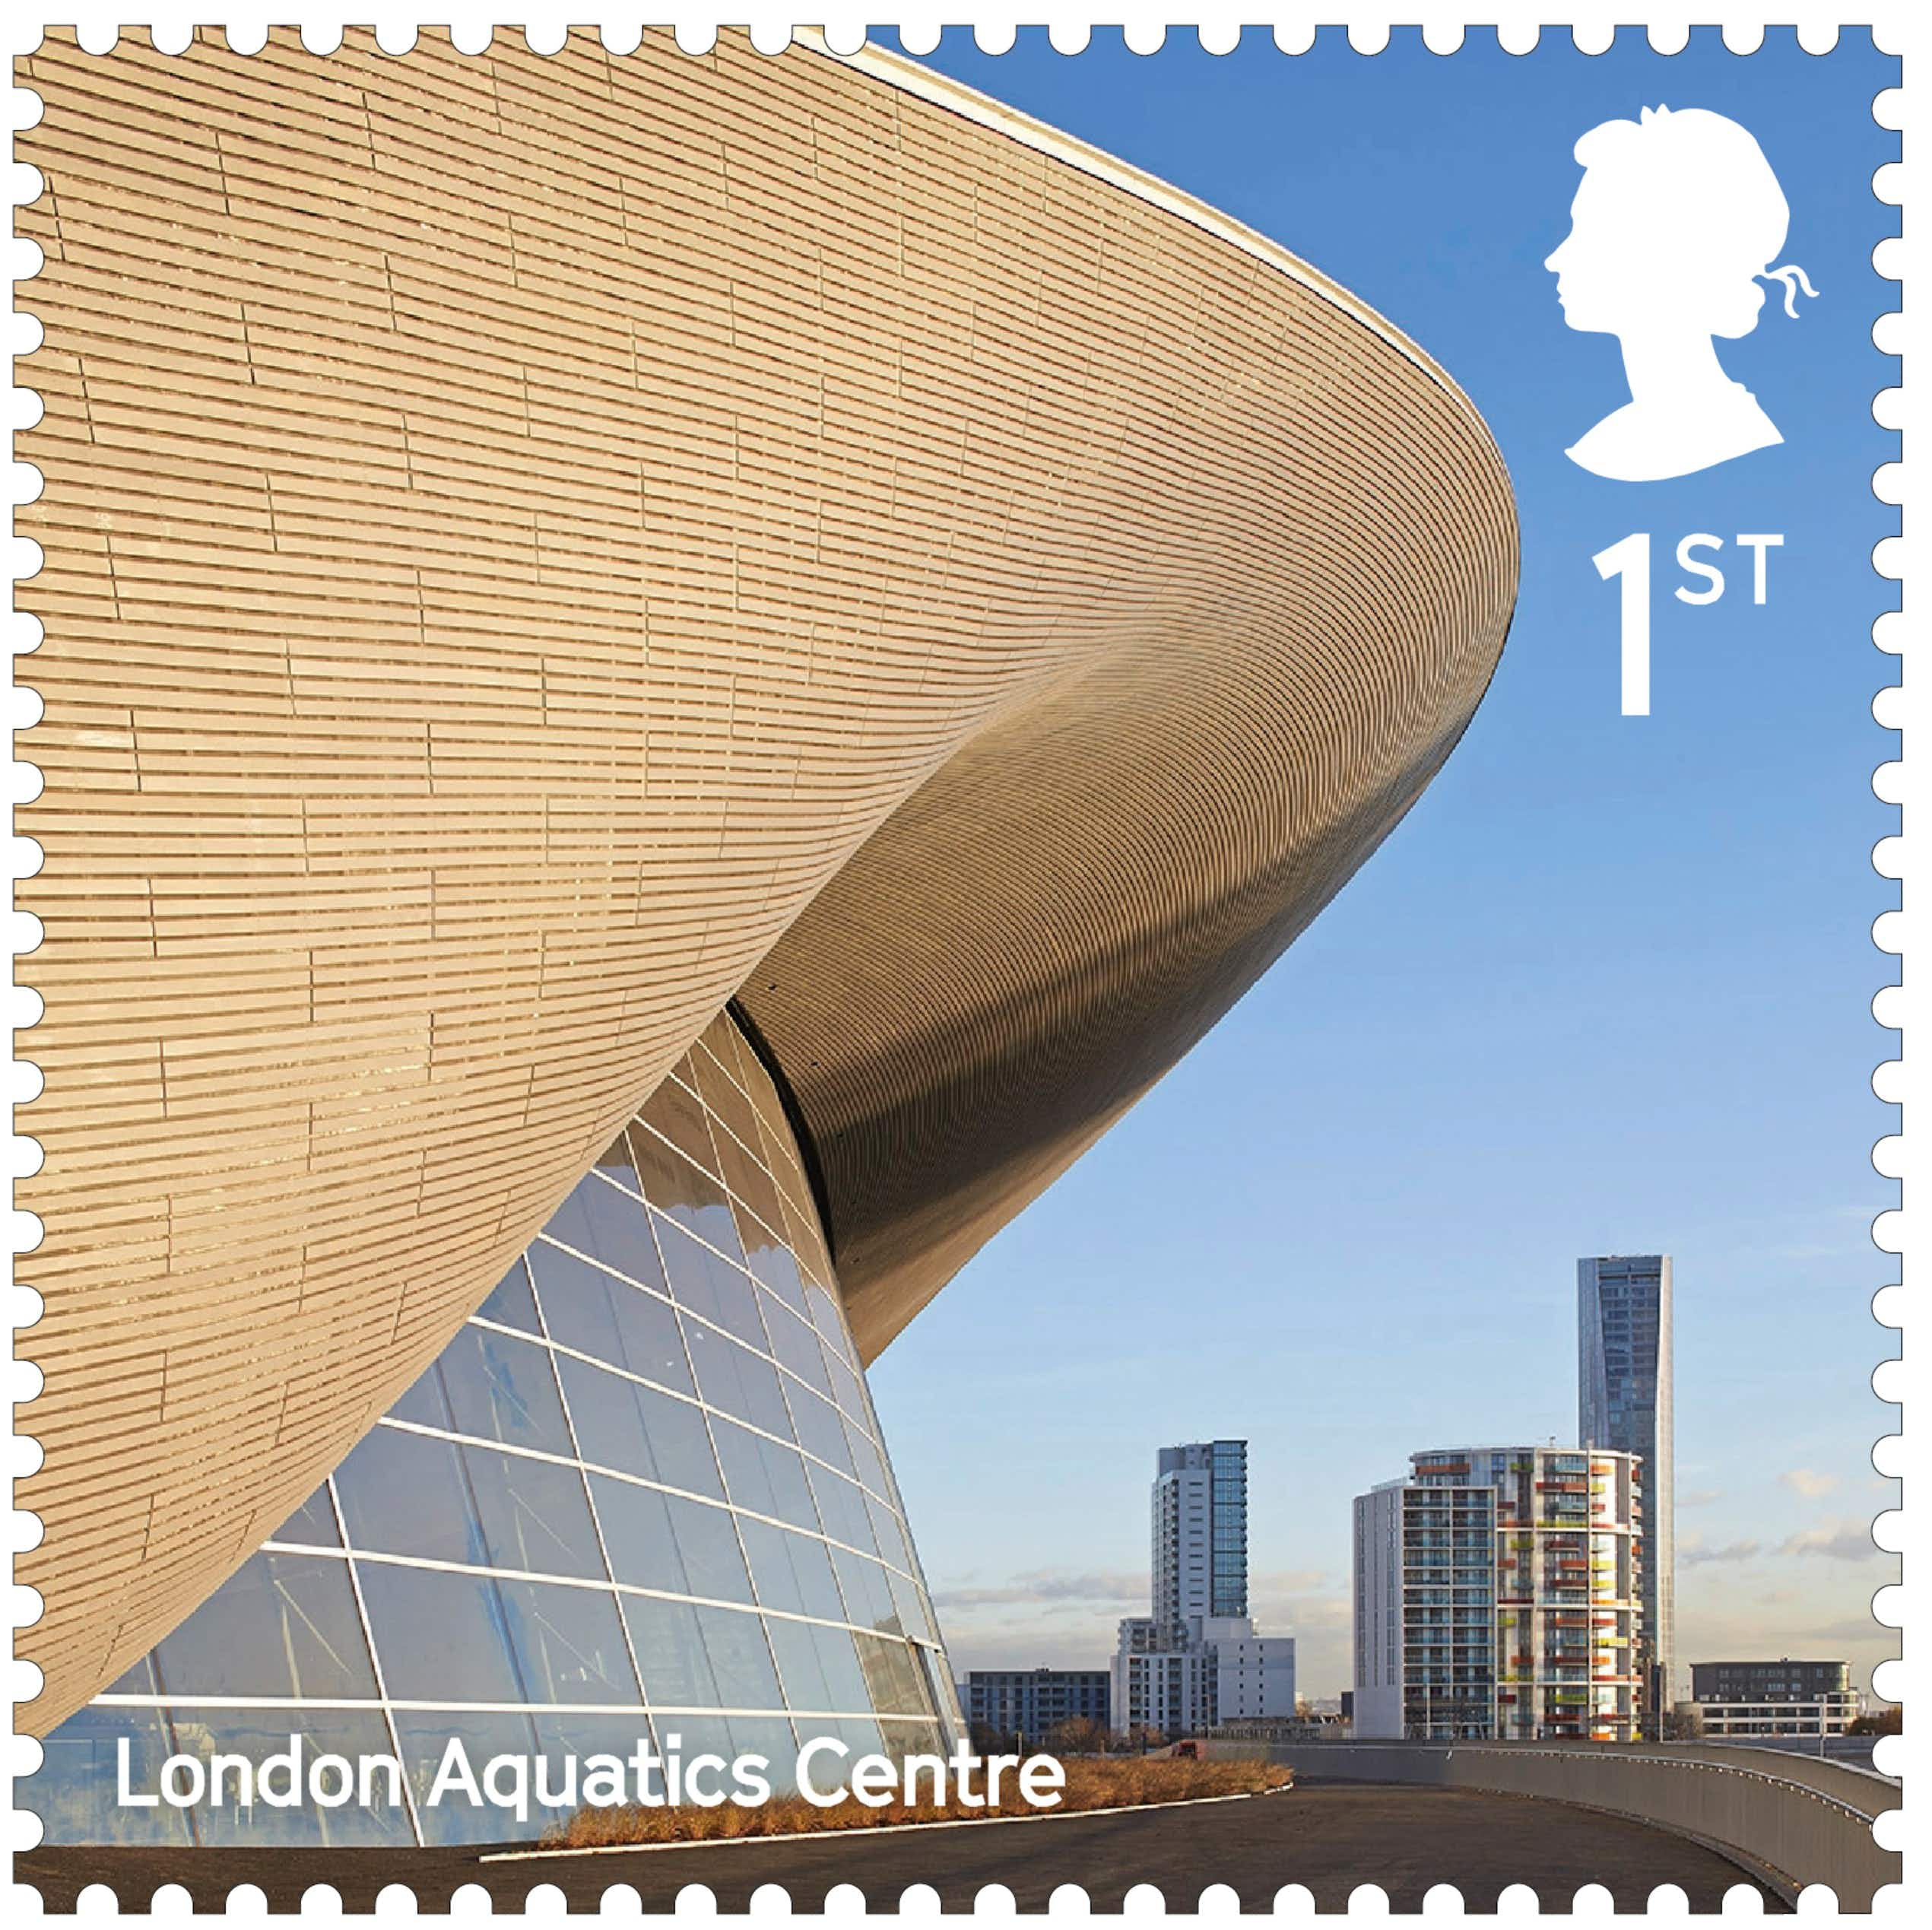 Britain's modern-day wonders celebrated in new Royal Mail stamp collection